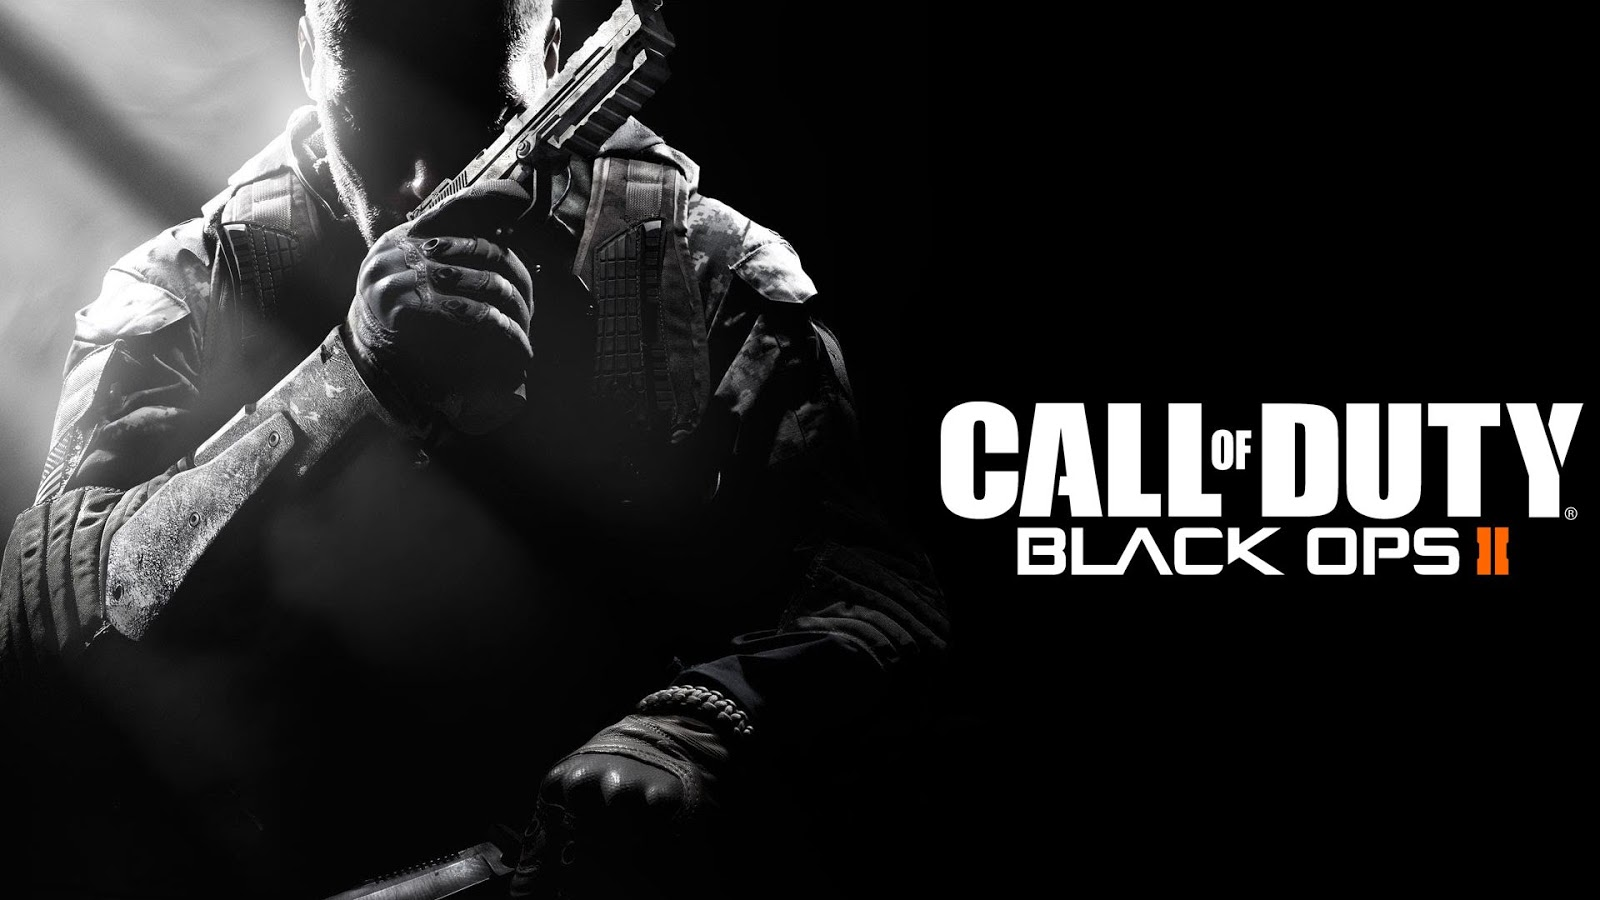 Free Wallpaper Black Ops 2 Wallpaper